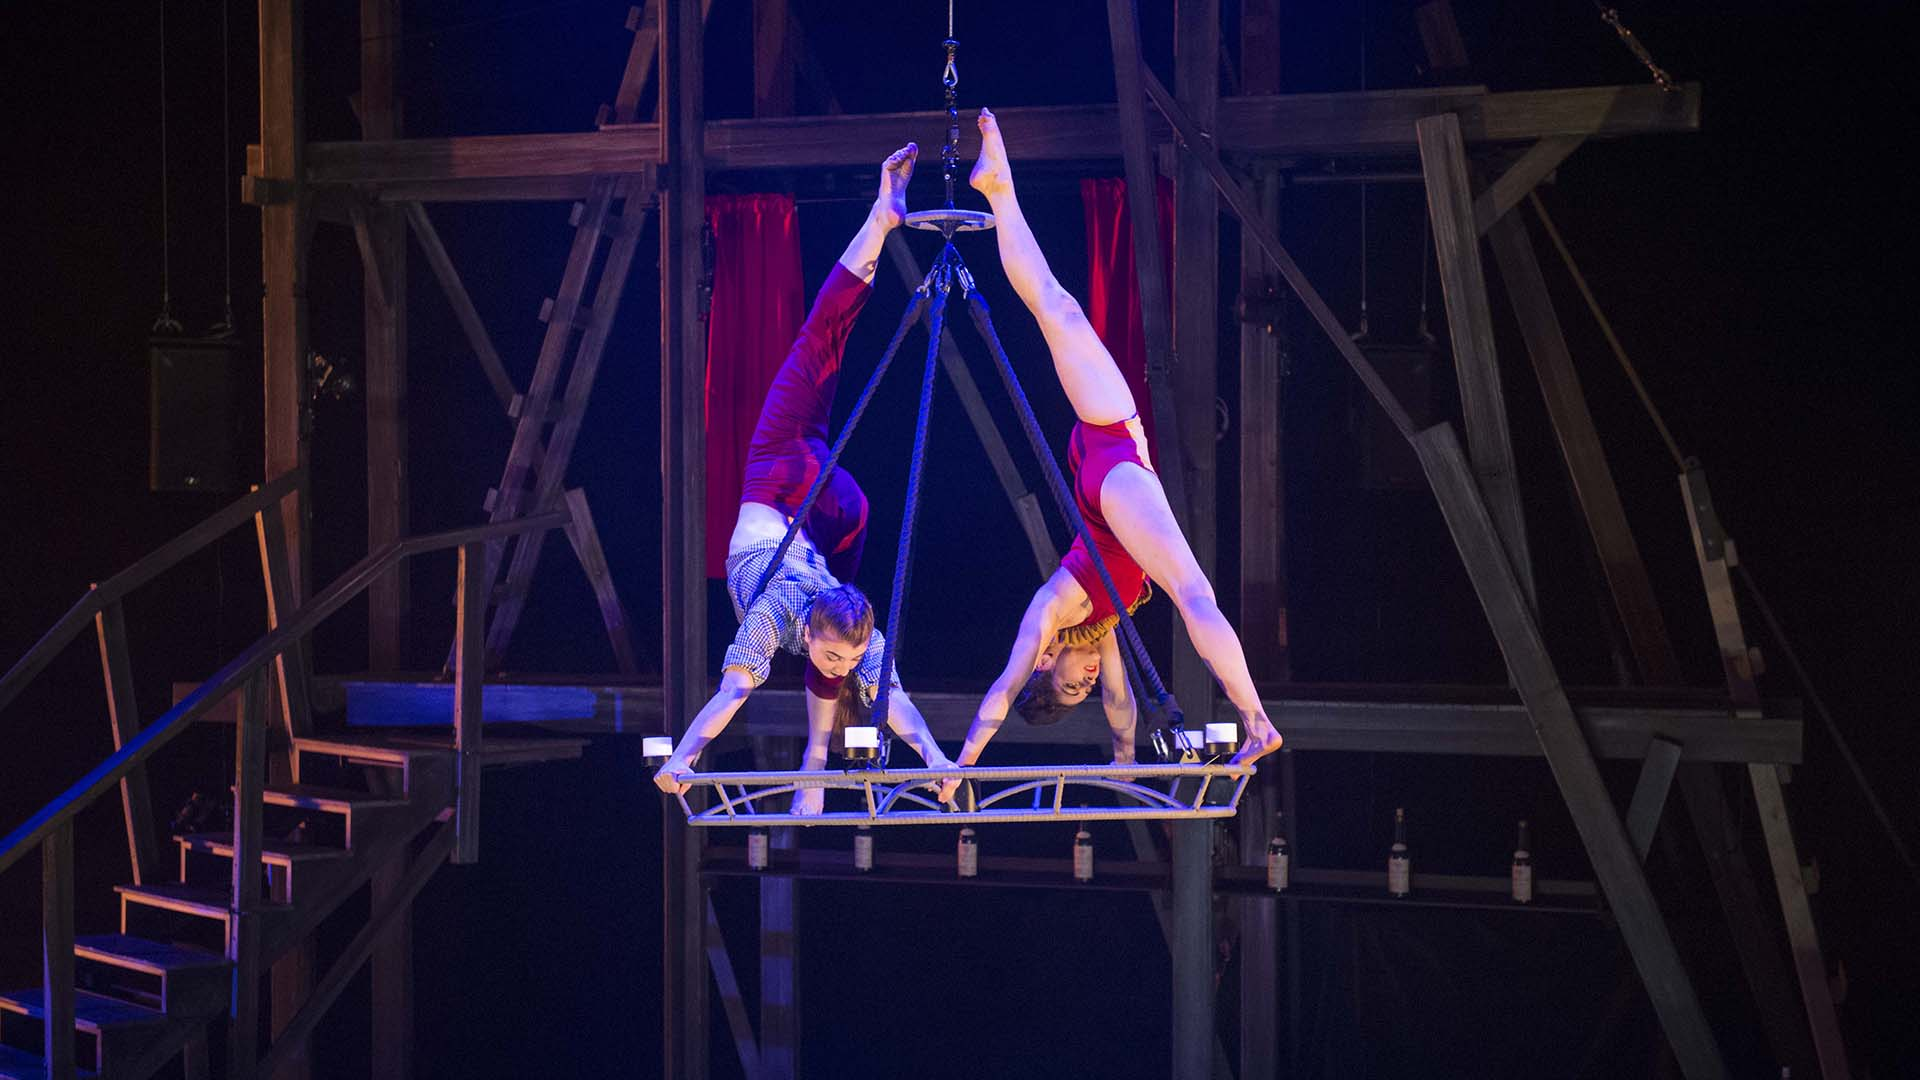 'Not just the circus, not just music': Cirque Eloize production 'is really a new beast,' says star